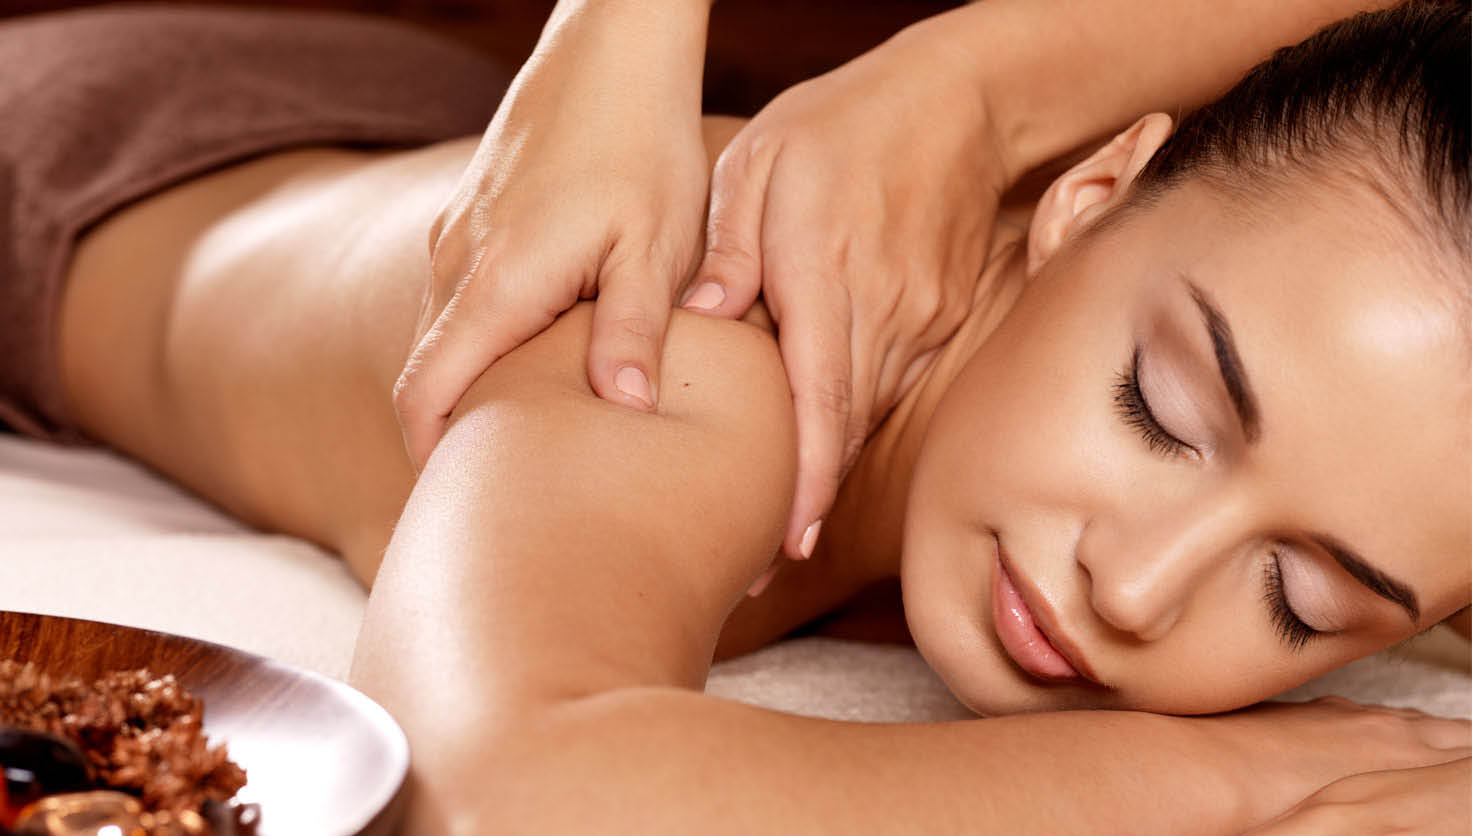 Jun Yi Spa - massage - reflexology - full body massage - foot massage - Renton, WA